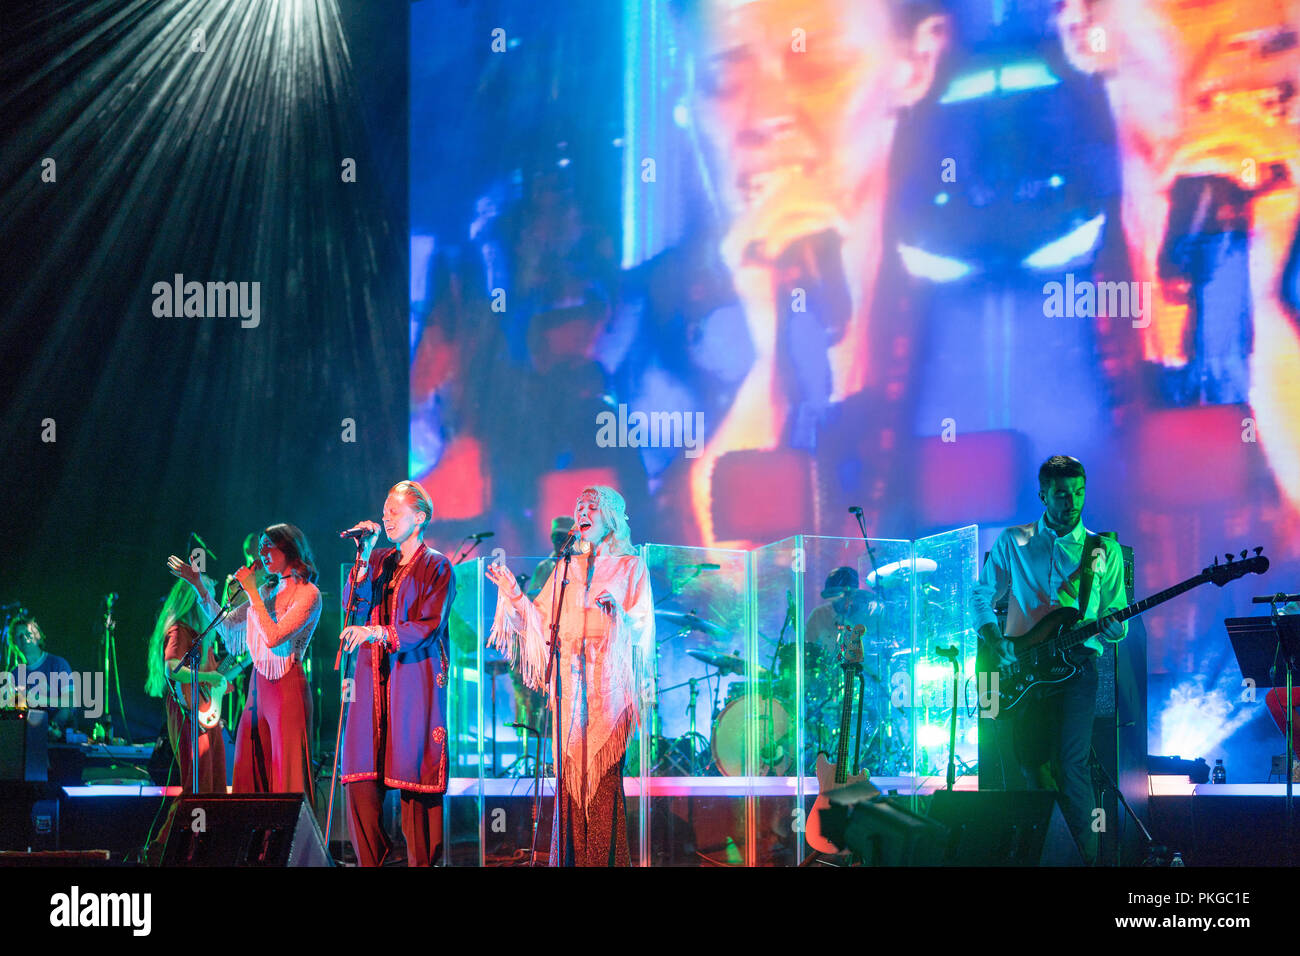 Southbank, London, UK. 13th Sep 2018. La Roux performing with Whyte Horses on stage at the Festival Hall, Southbank, in London. Photo date: Thursday, September 13, 2018. Photo: Roger Garfield/Alamy Credit: Roger Garfield/Alamy Live News Stock Photo